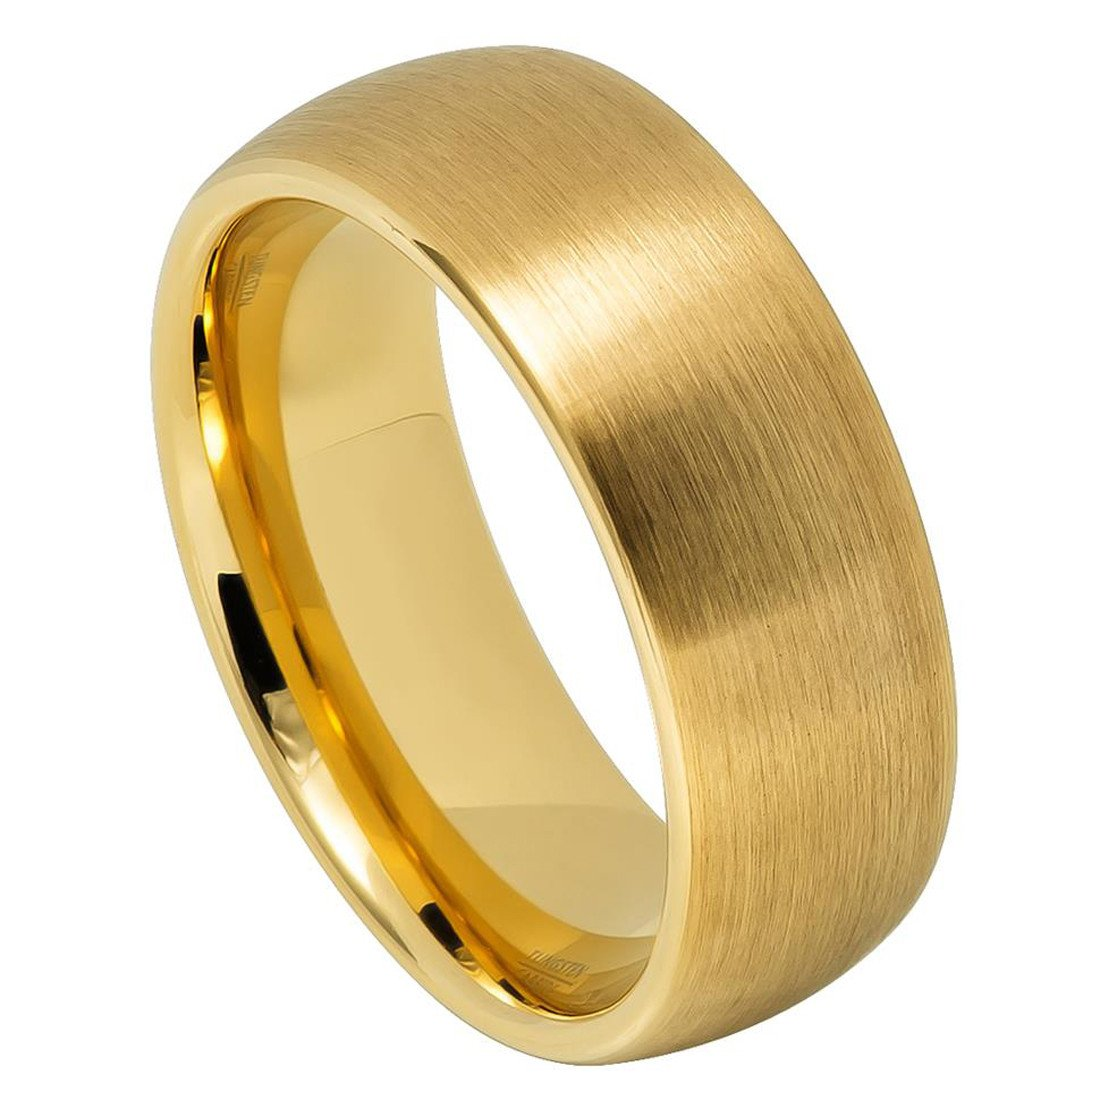 Jewelry & Watches Titanium 14k Yellow Inlay Flat 8mm Wedding Ring Band Size 8.50 Precious Metal 100% High Quality Materials Bridal & Wedding Party Jewelry